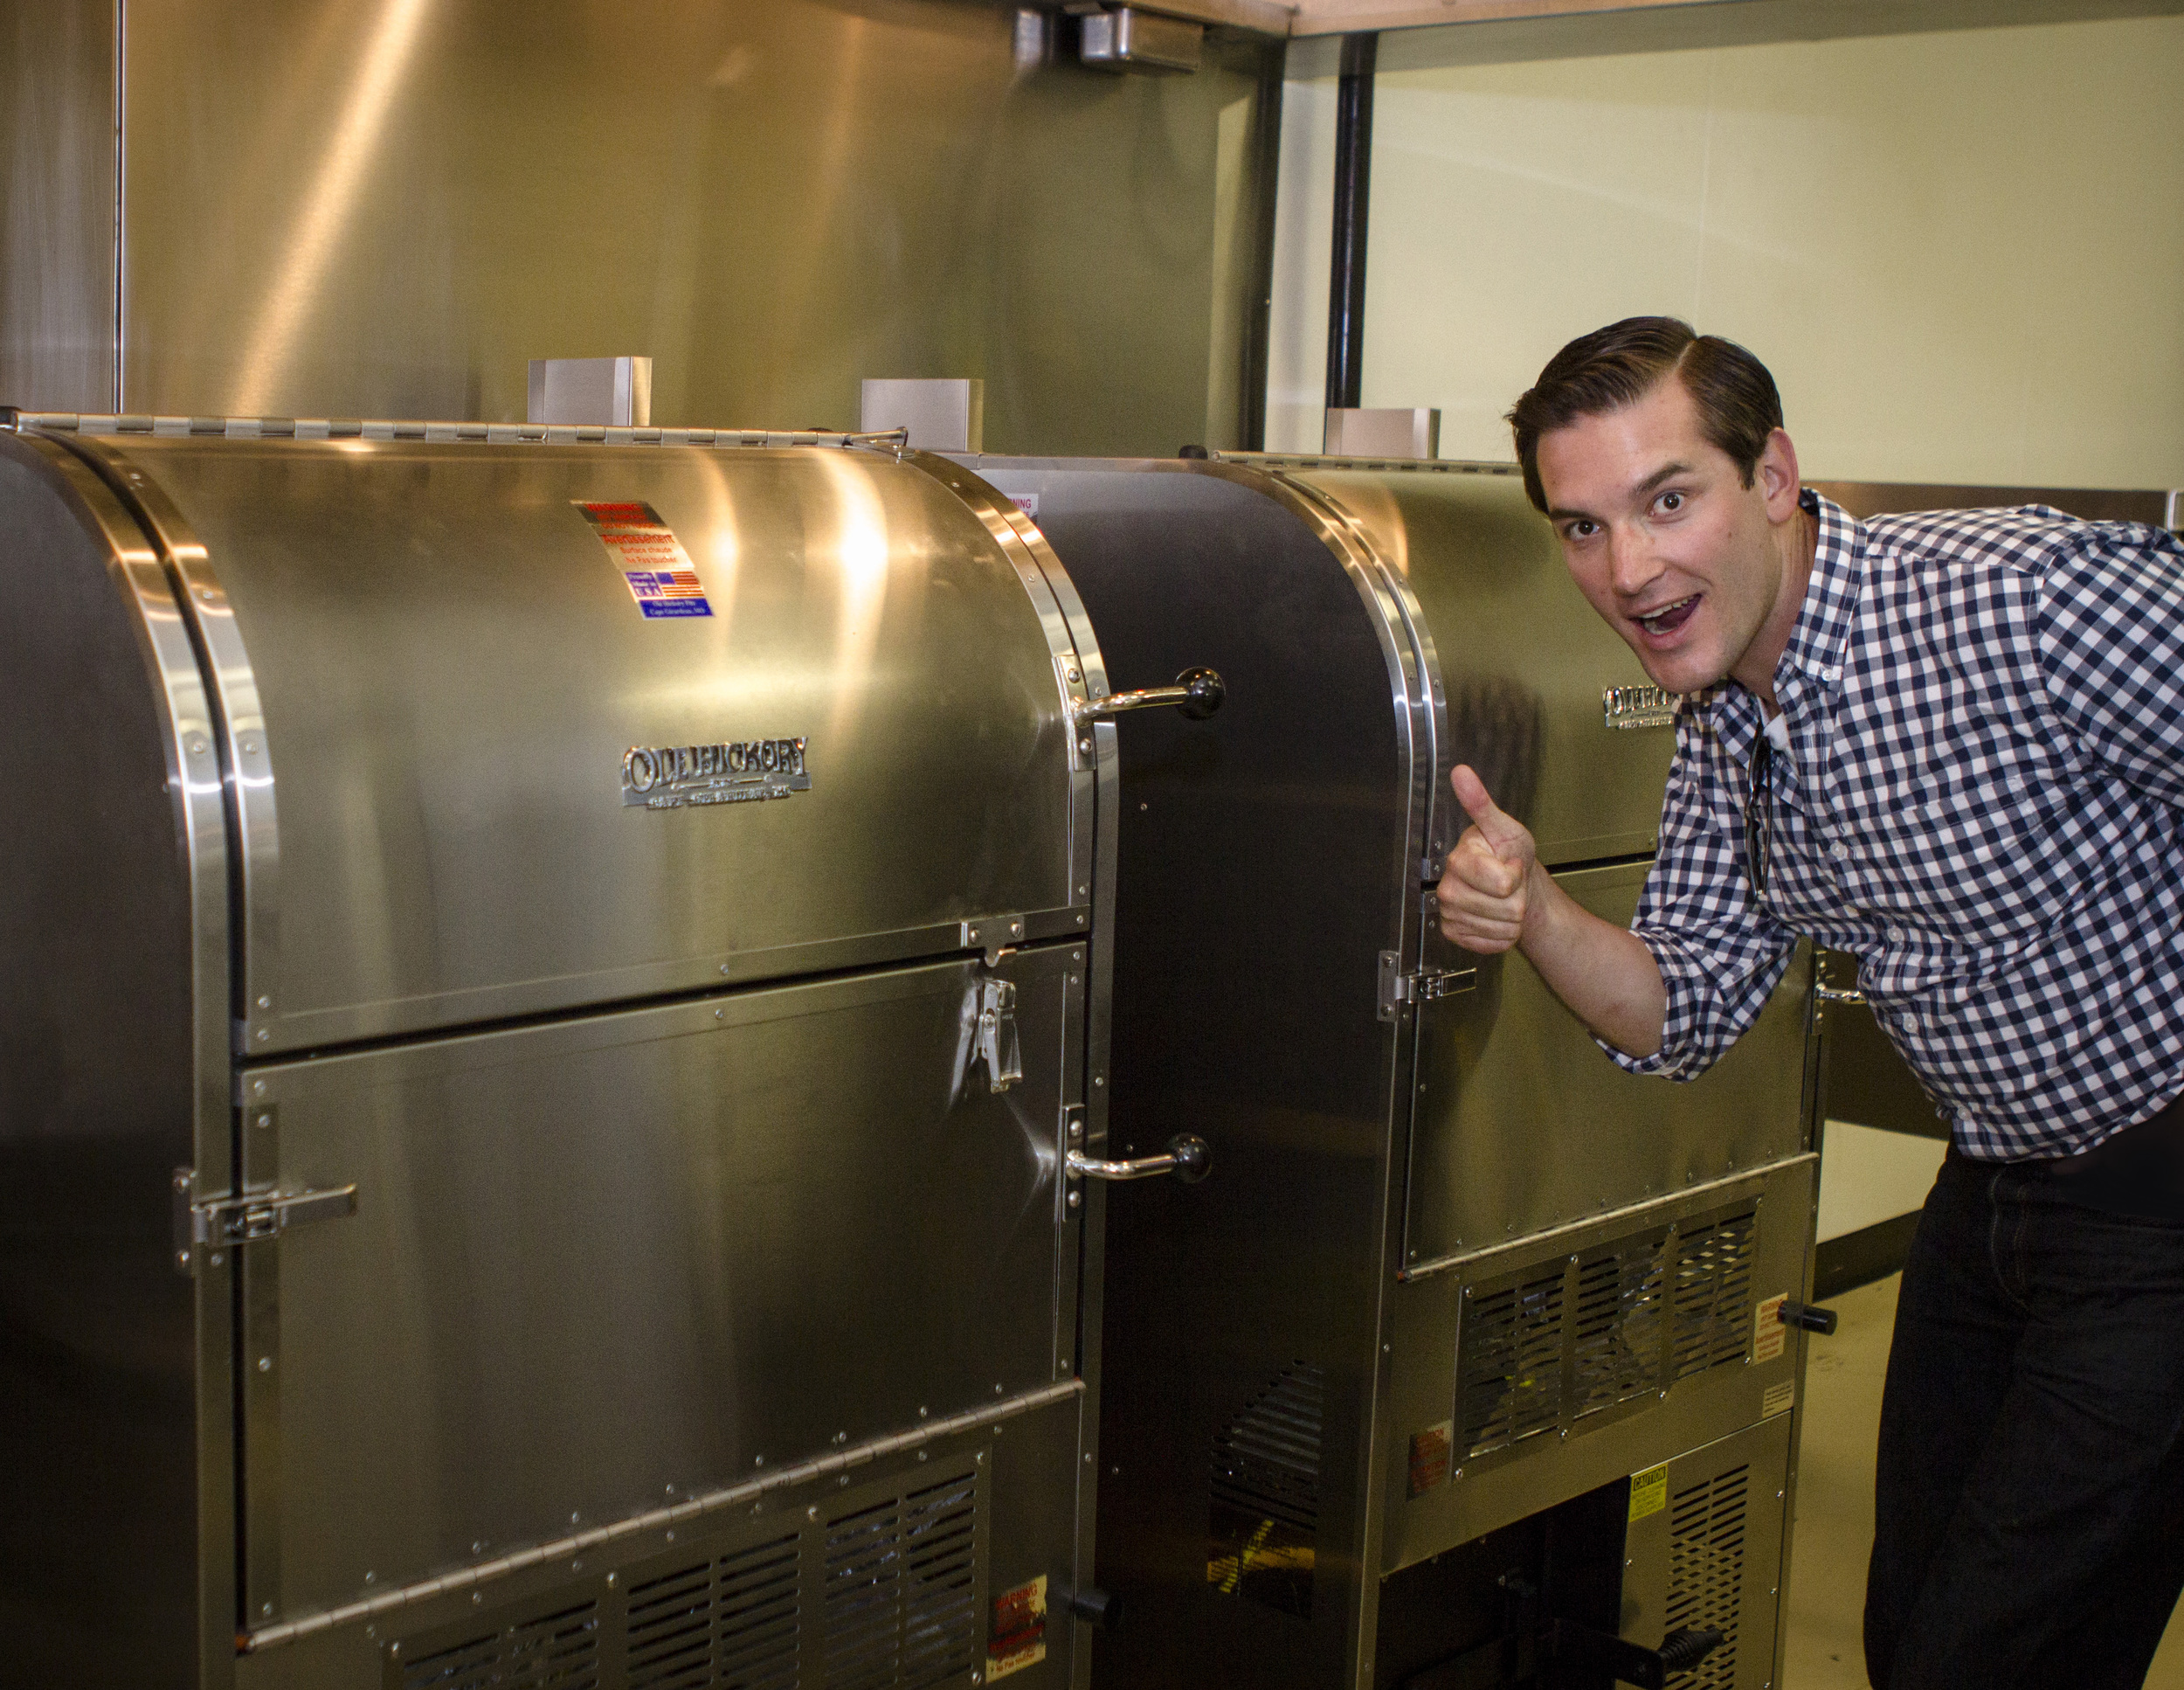 Glen Farris inspects the custom made industrial smokers inside of the forthcoming Goldmine BBQ.